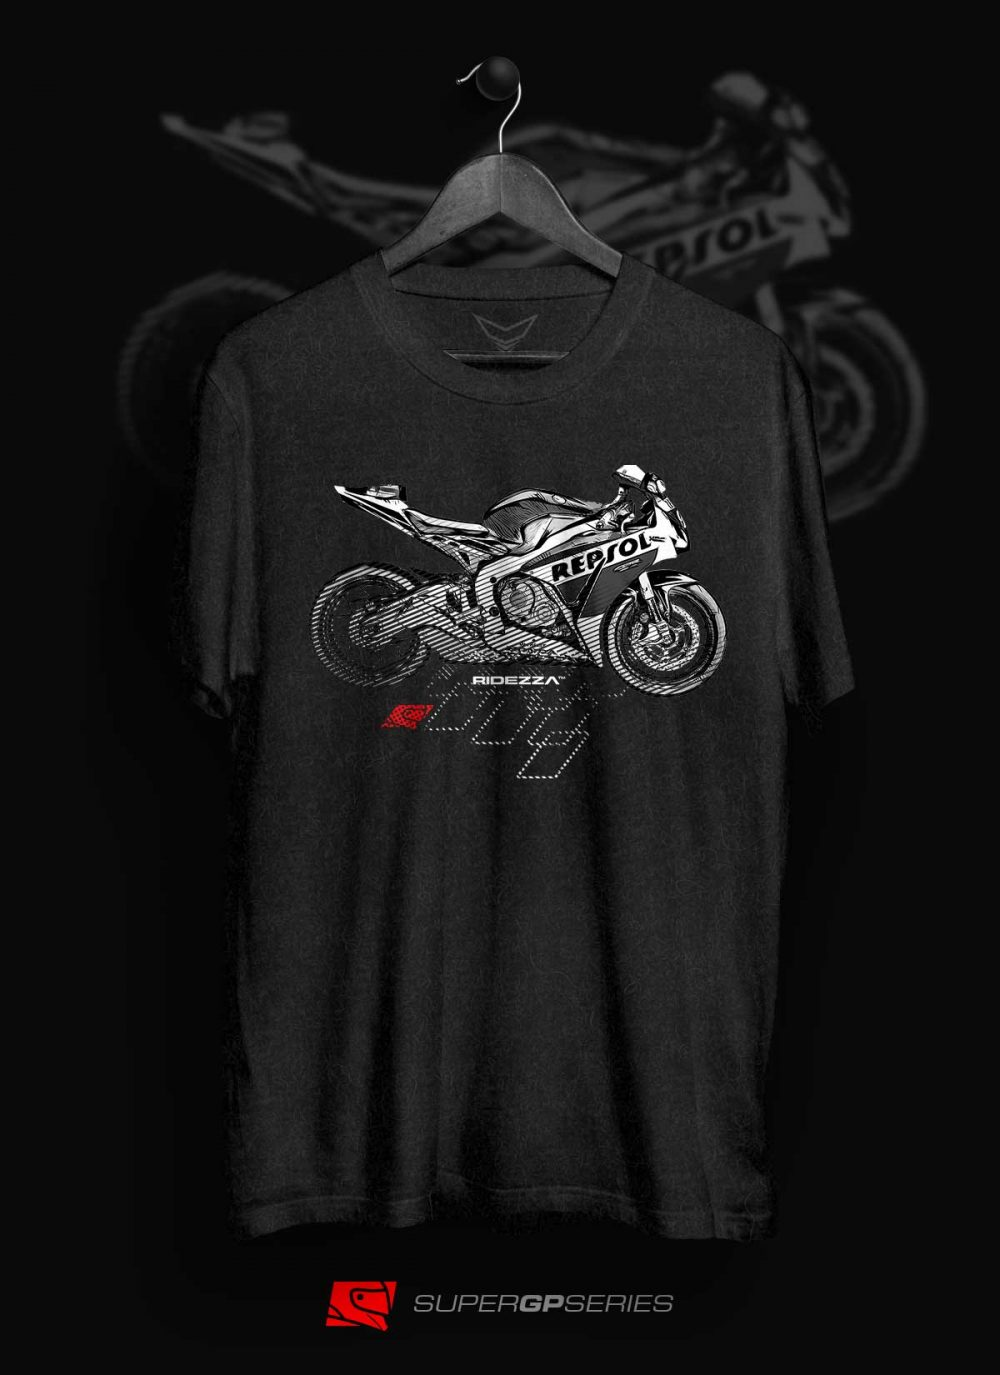 Ridezza CBR Repsol SuperGP Series T-Shirt